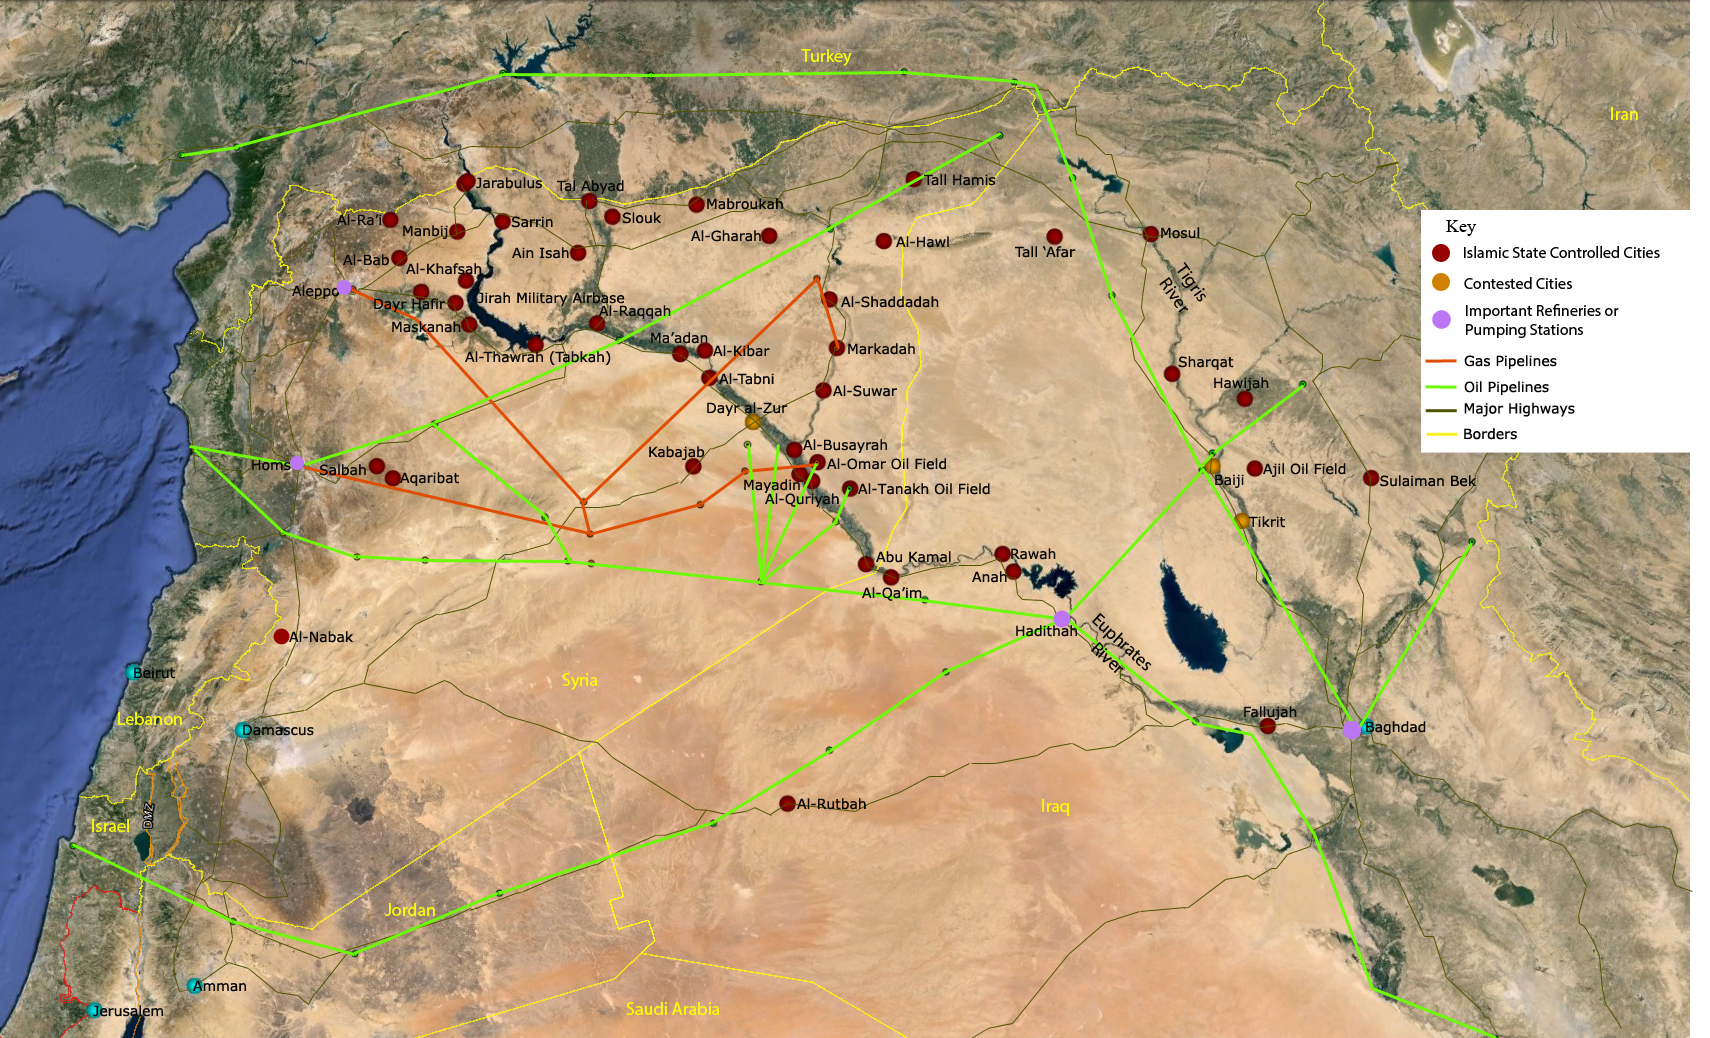 How to turn off the isis tap yaleglobal online enlarge image gumiabroncs Image collections